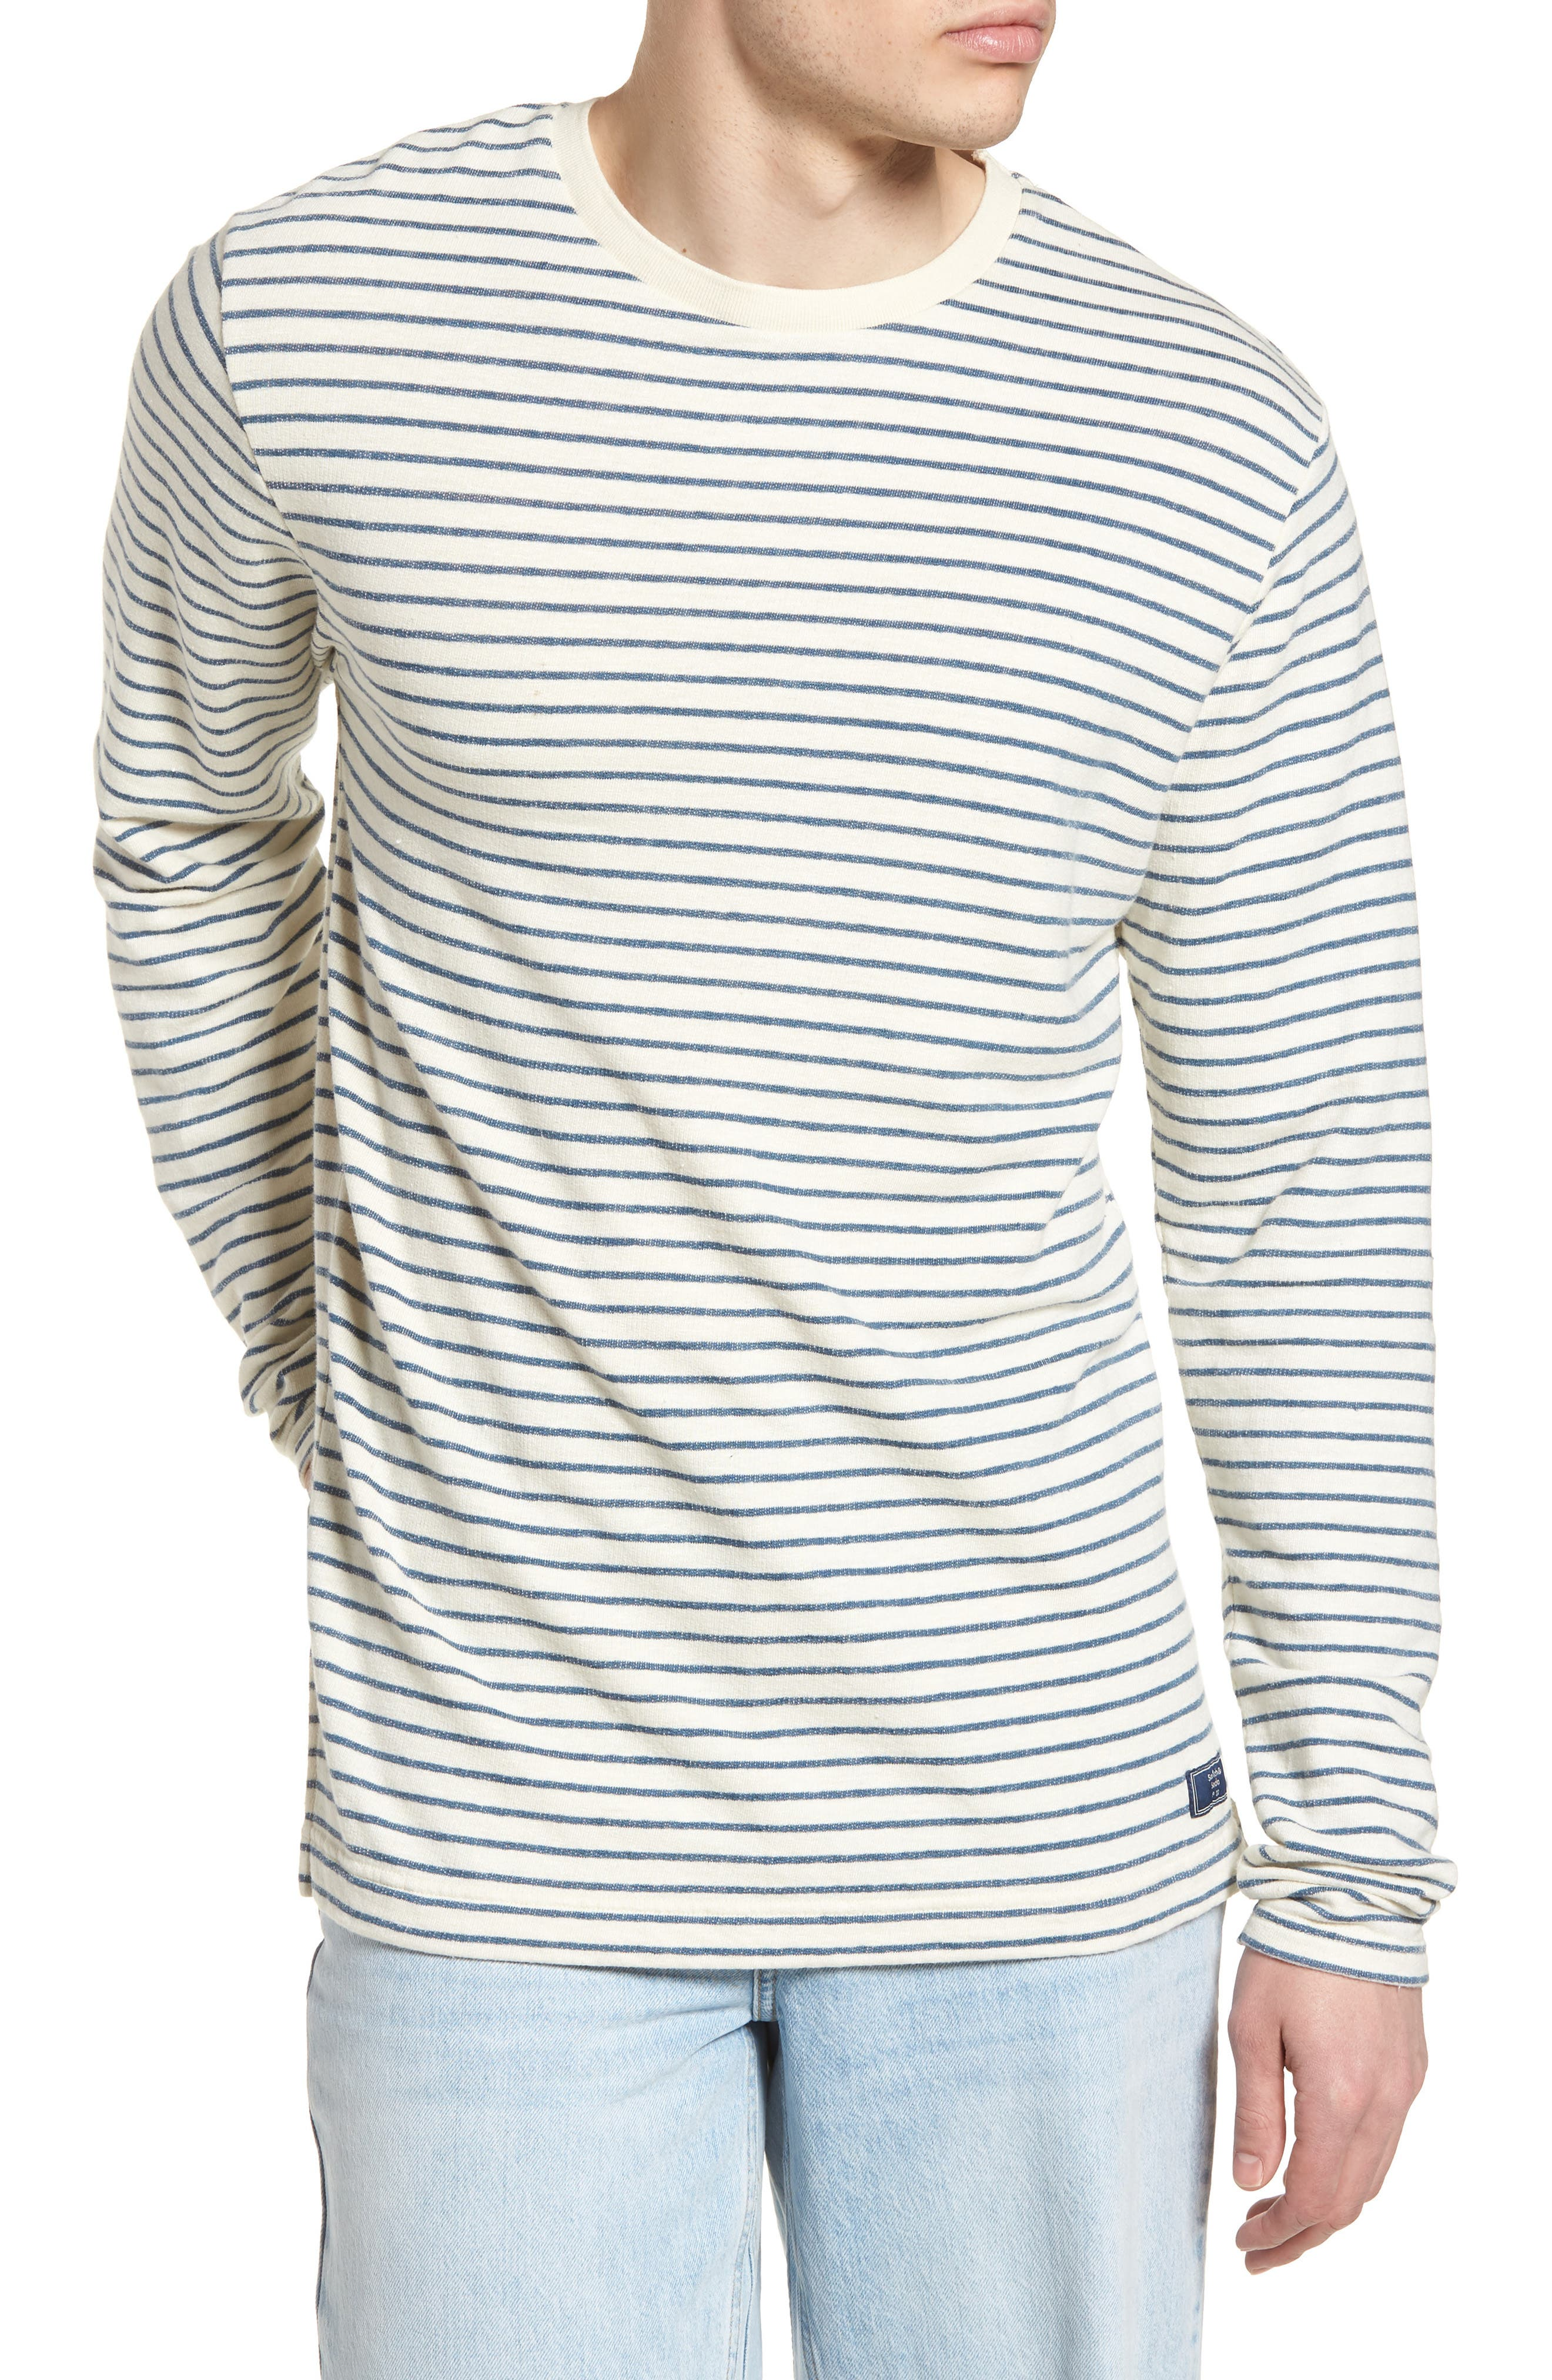 Stripe Crewneck Sweater,                             Main thumbnail 1, color,                             250